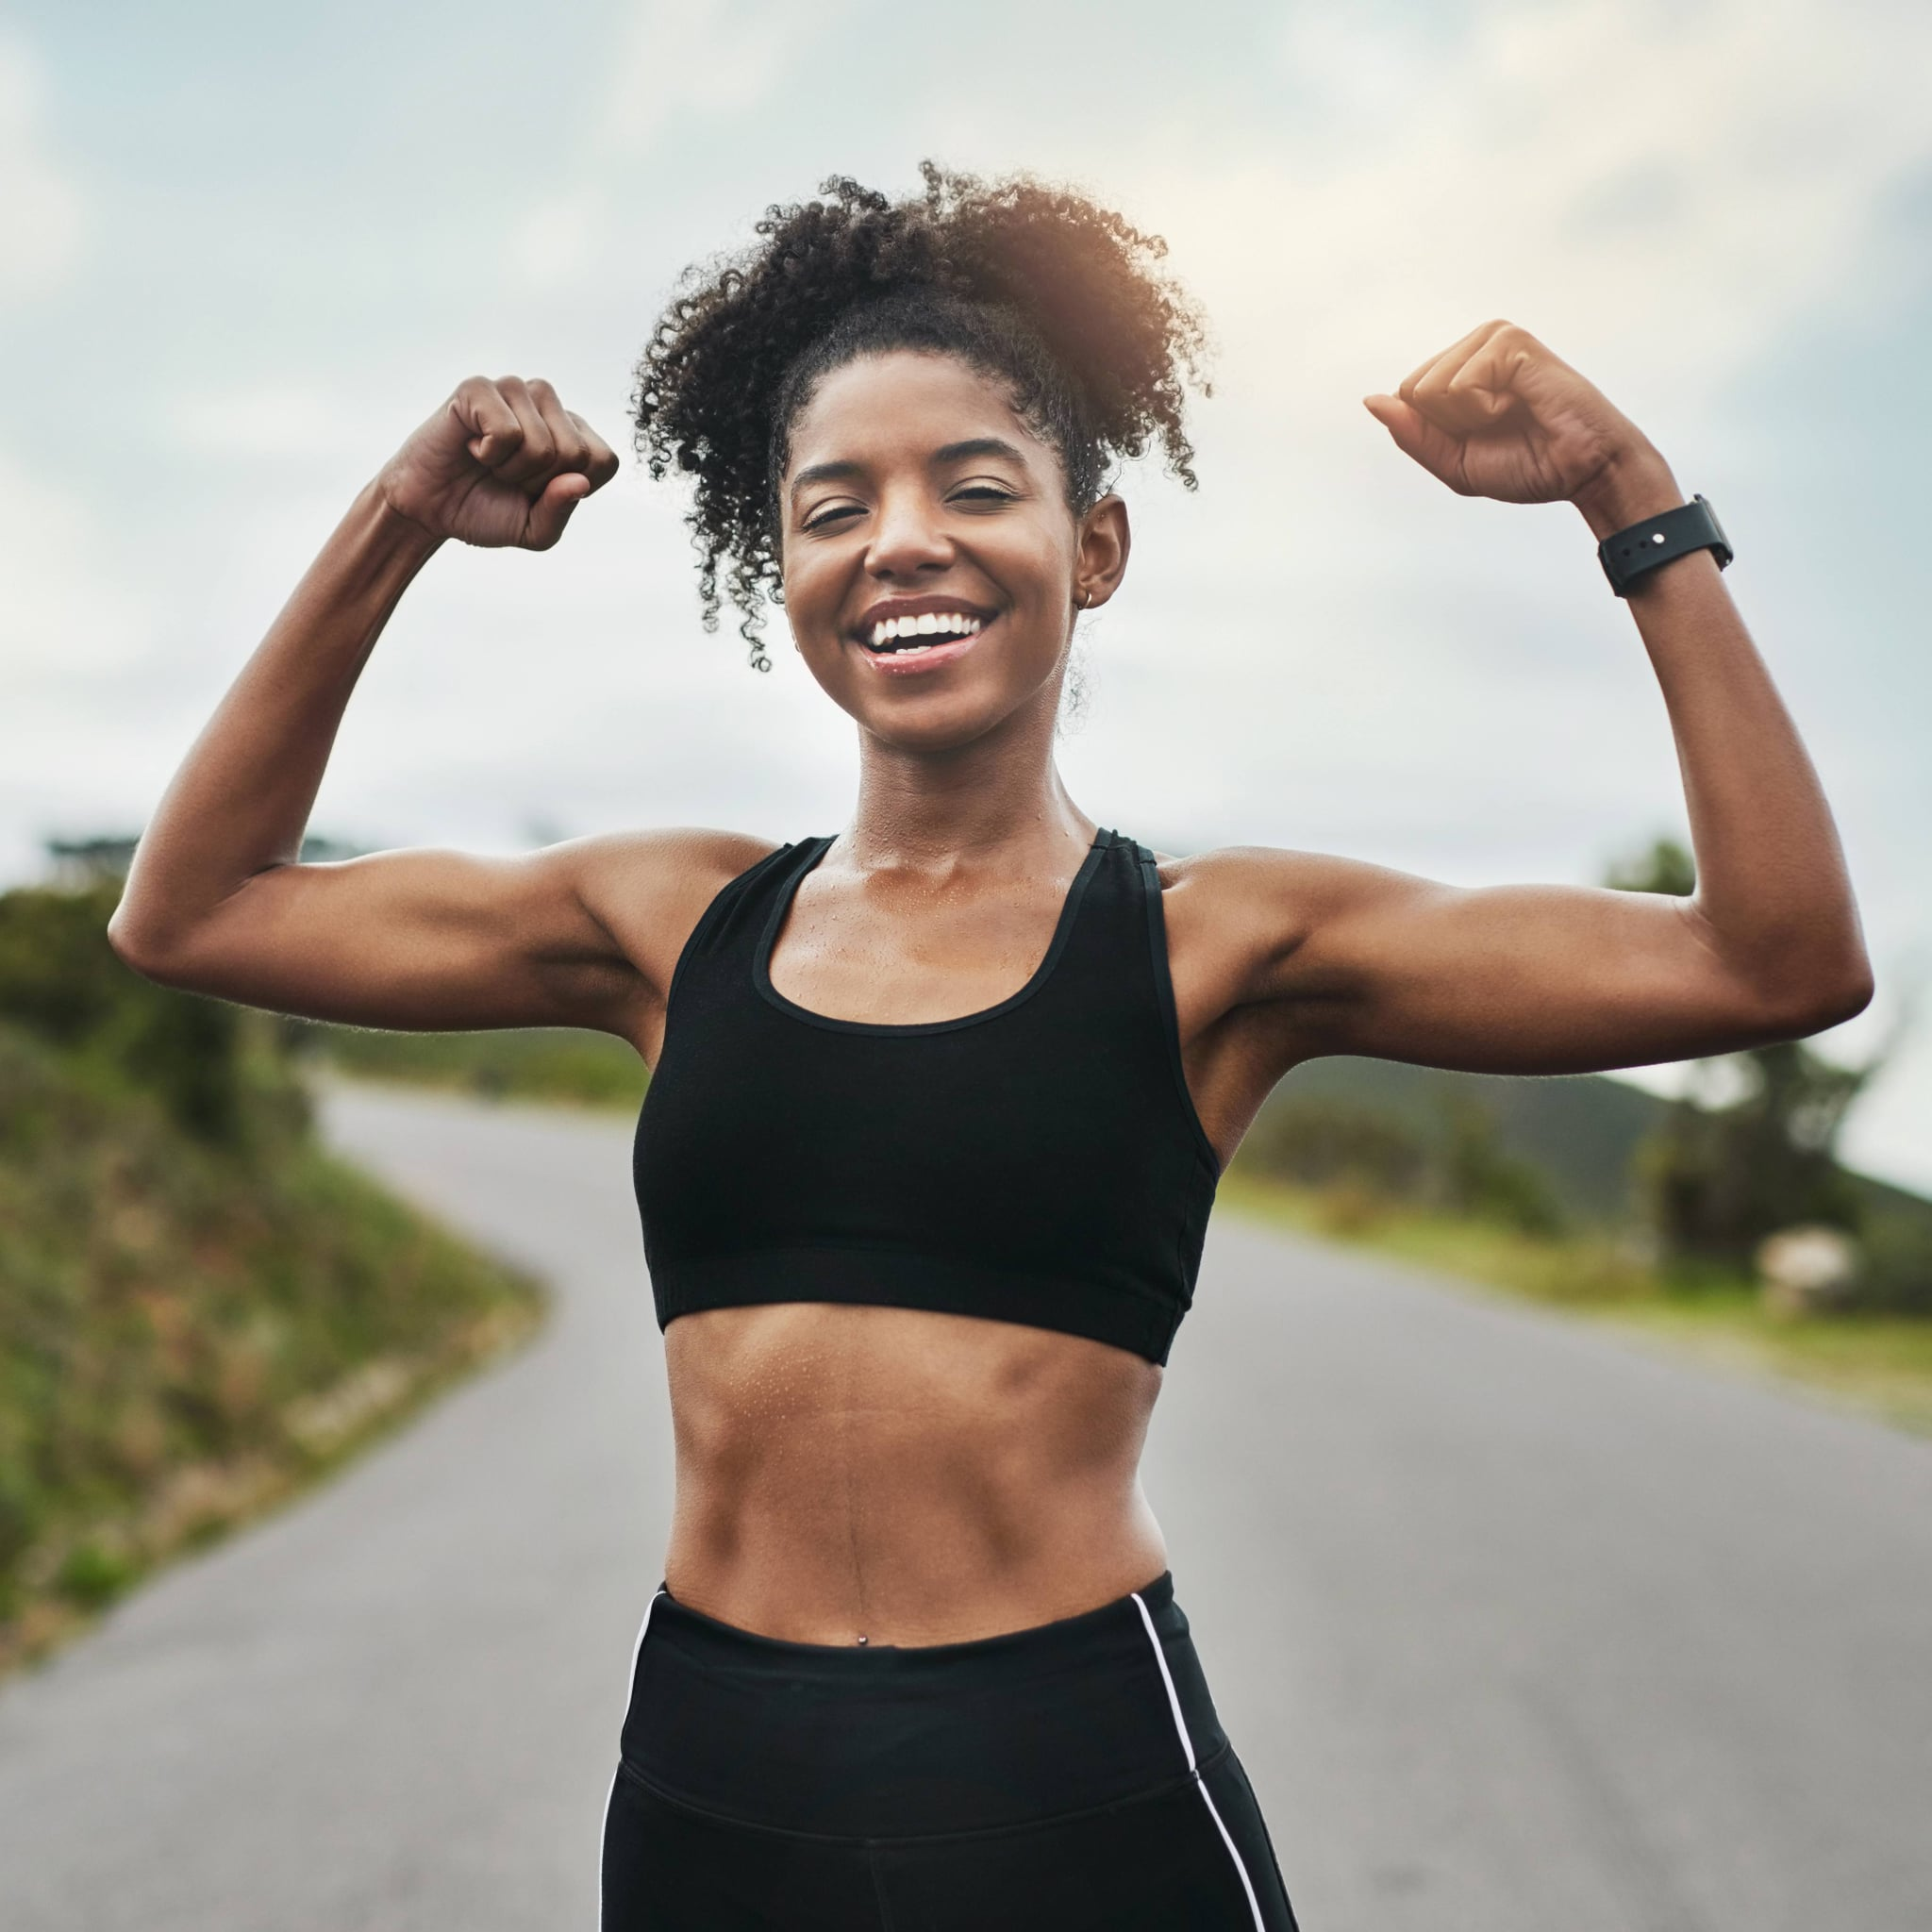 Workout Plan For Women Popsugar Fitness Crossposts are welcome as long as they follow the rules of this subreddit. workout plan for women popsugar fitness